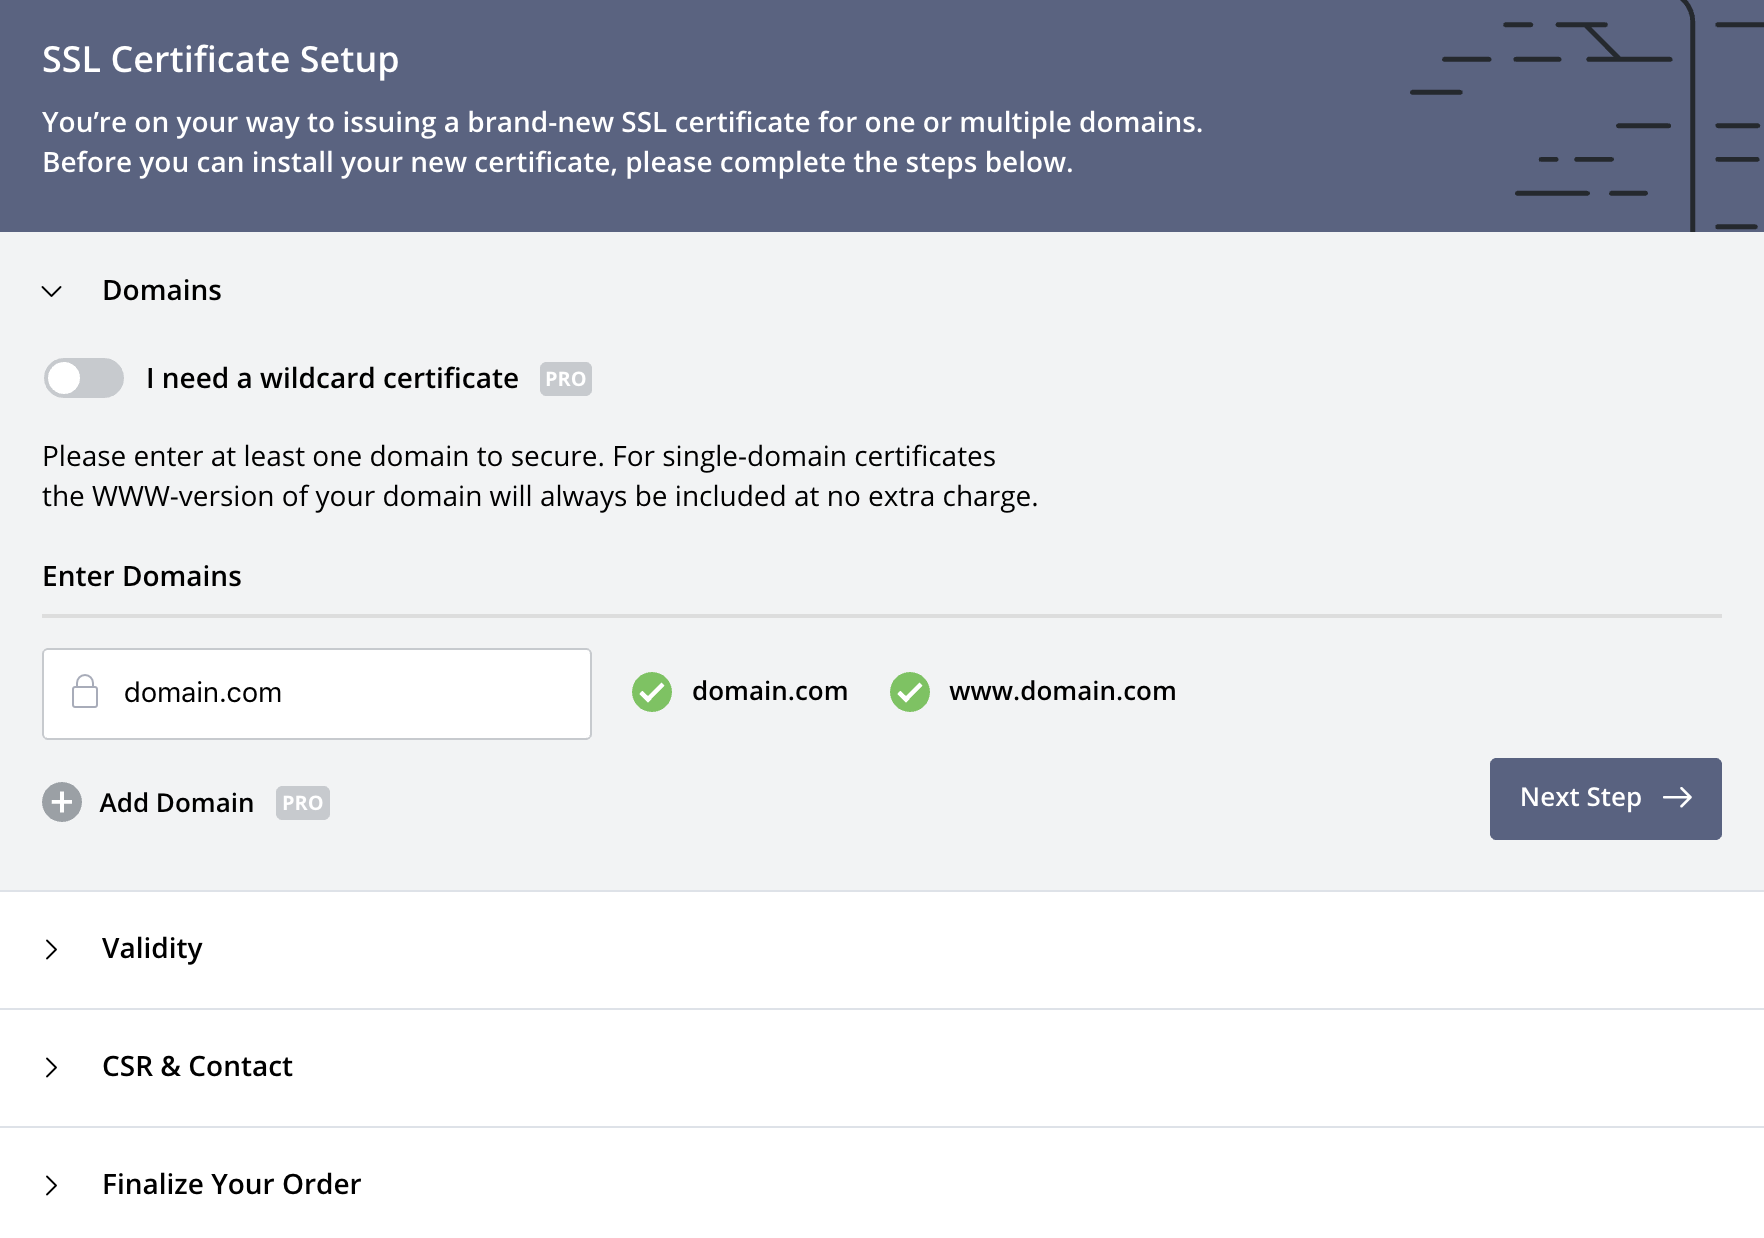 Create Certificate: Domains